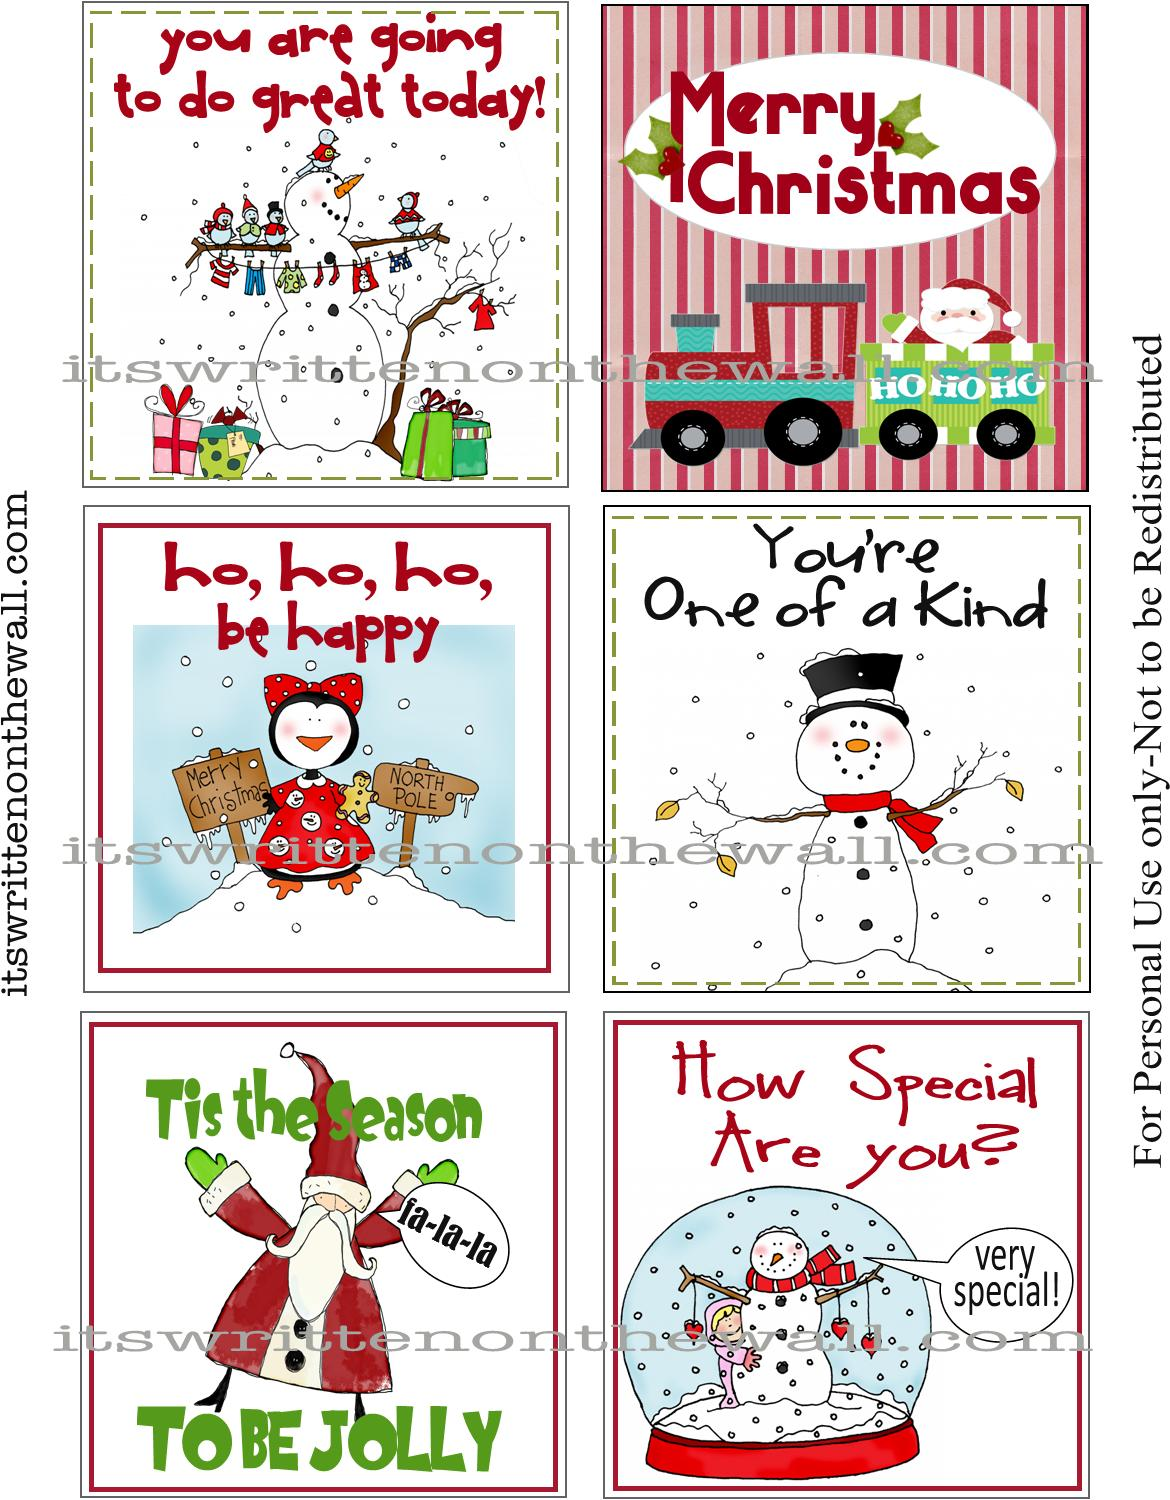 10 Free Printable Lunchbox Notes - Oh My Creative |Christmas Lunch Box Notes